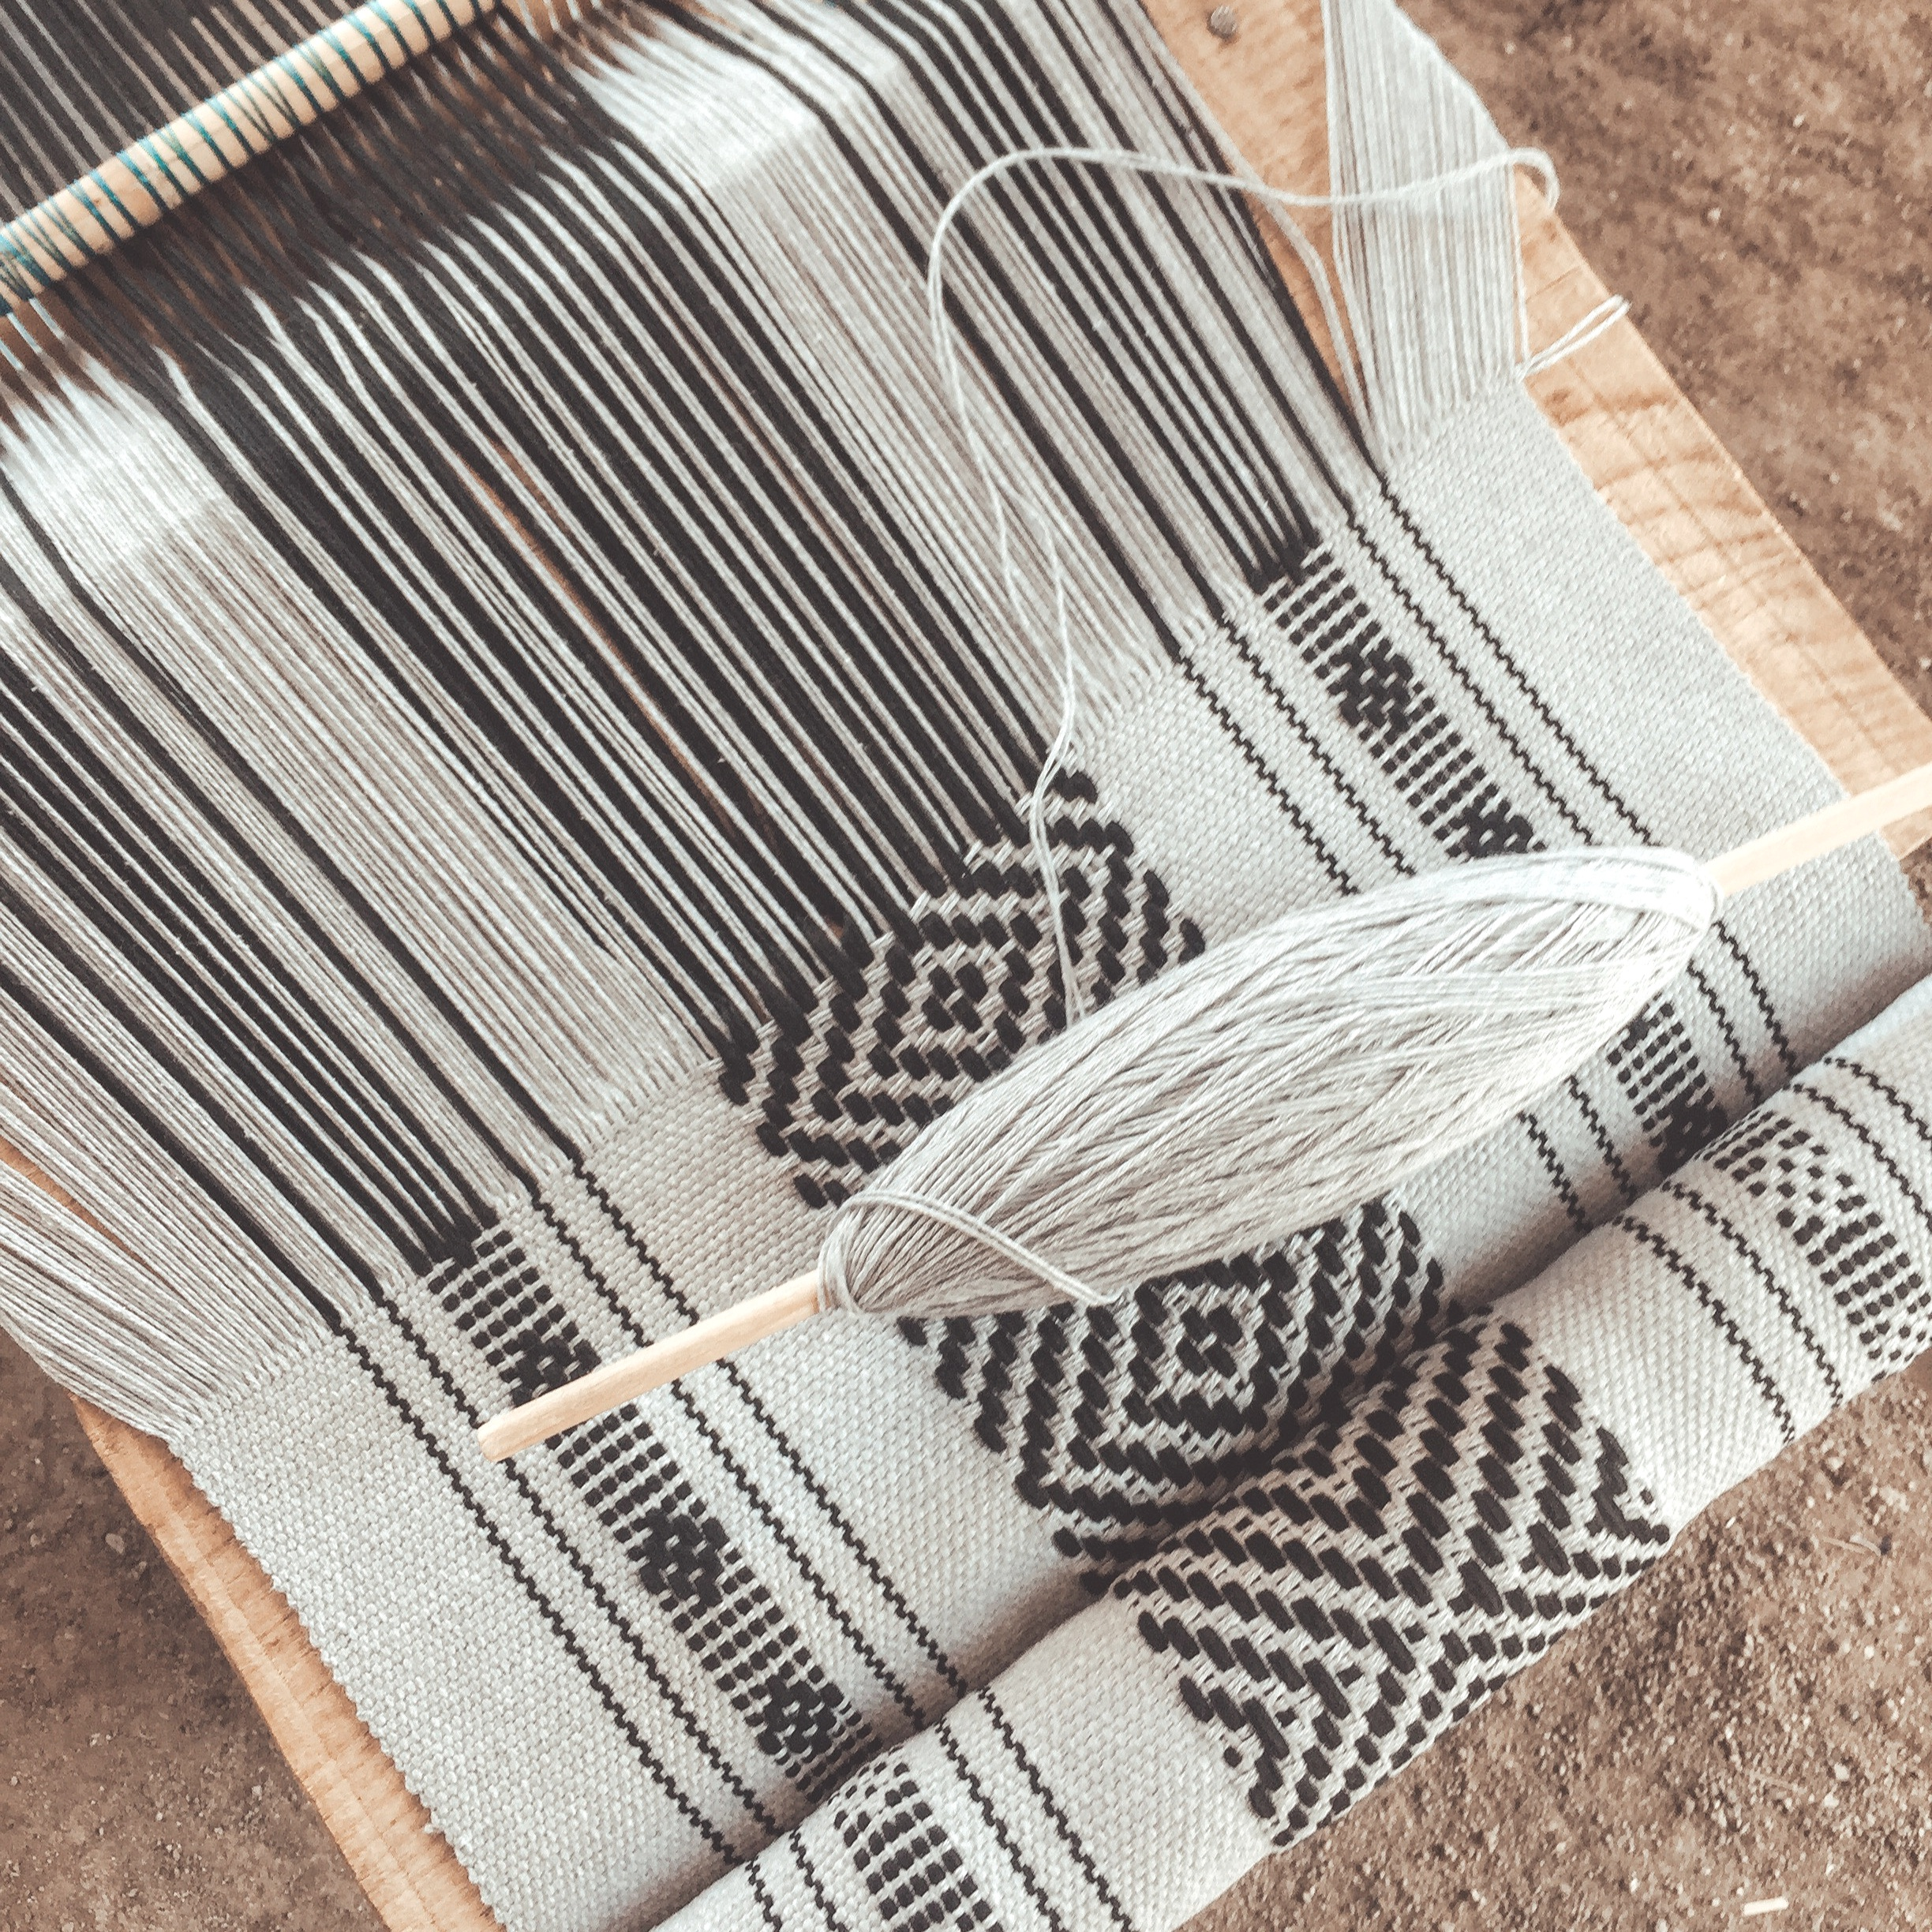 WEAVING + EMBROIDERY WORKSHOPS + THE CRAFTS OF OAXACA, MEXICO - WEAVING, EMBROIDERY, NATURAL DYEING + POTTERY IN OAXACA CITY, MEXICONOVEMBER 21- 27, 2019ONLY 1 SPOT LEFT!